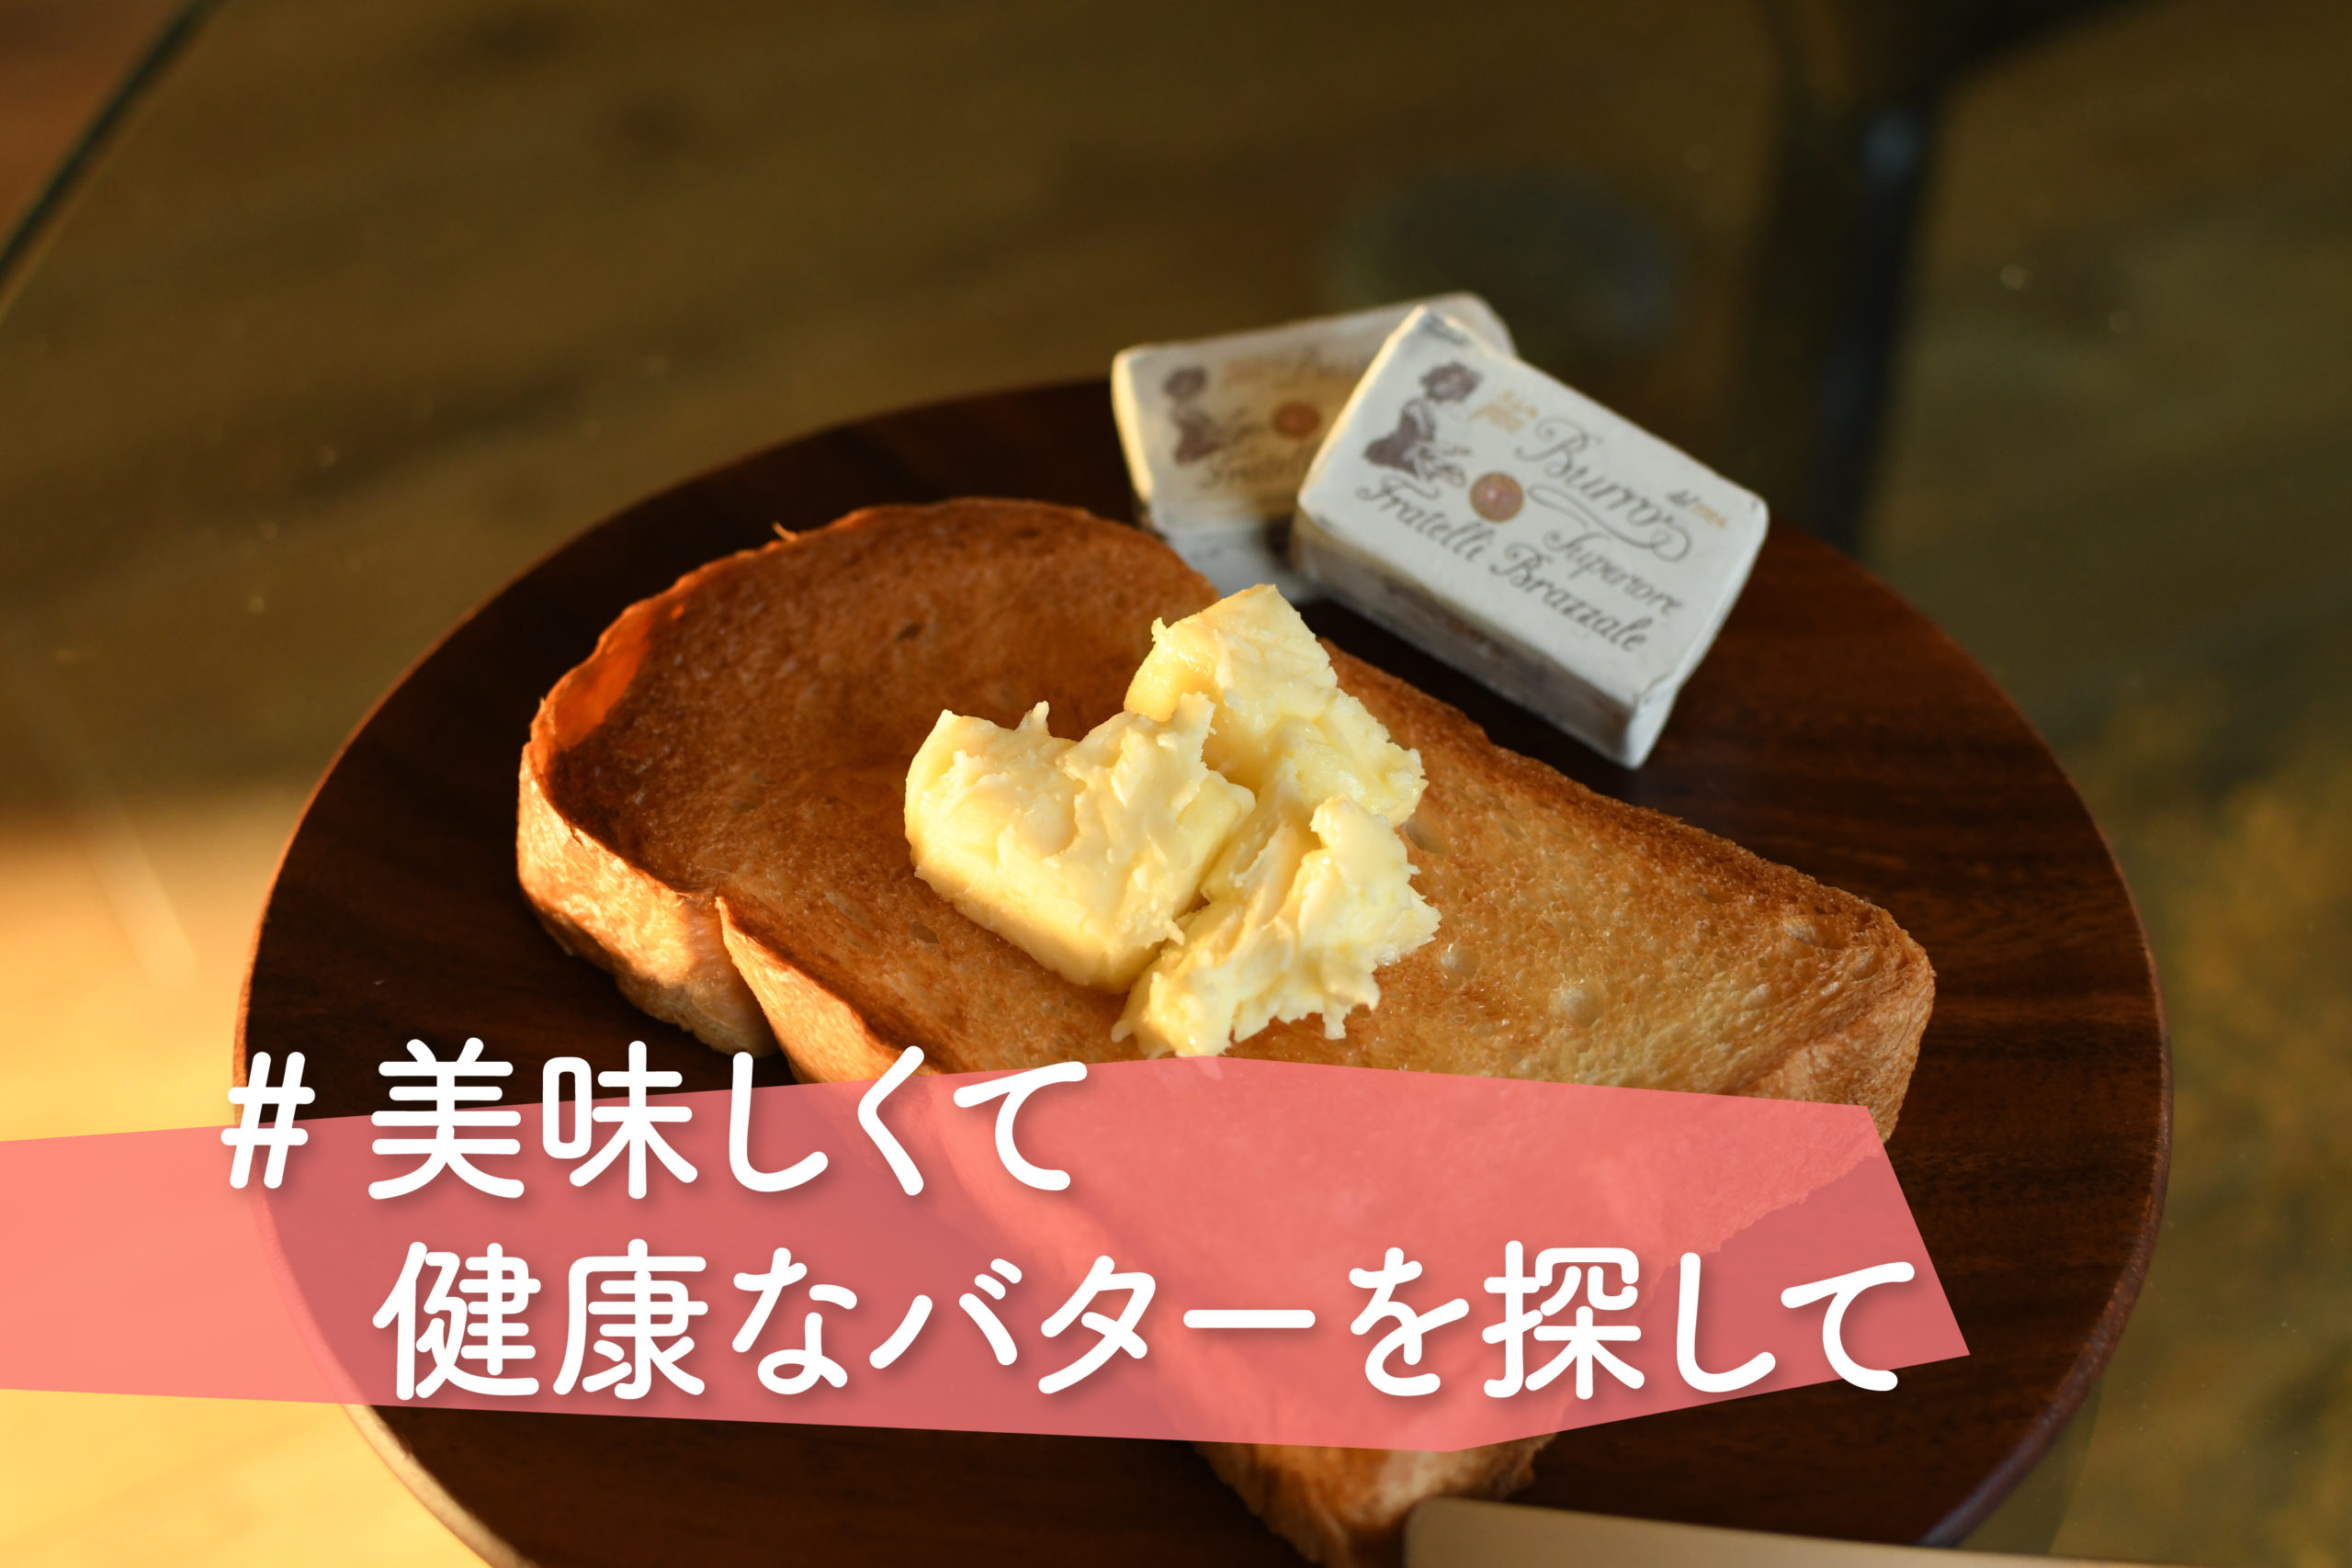 CRAZY BUTTER LOVER 石川さん